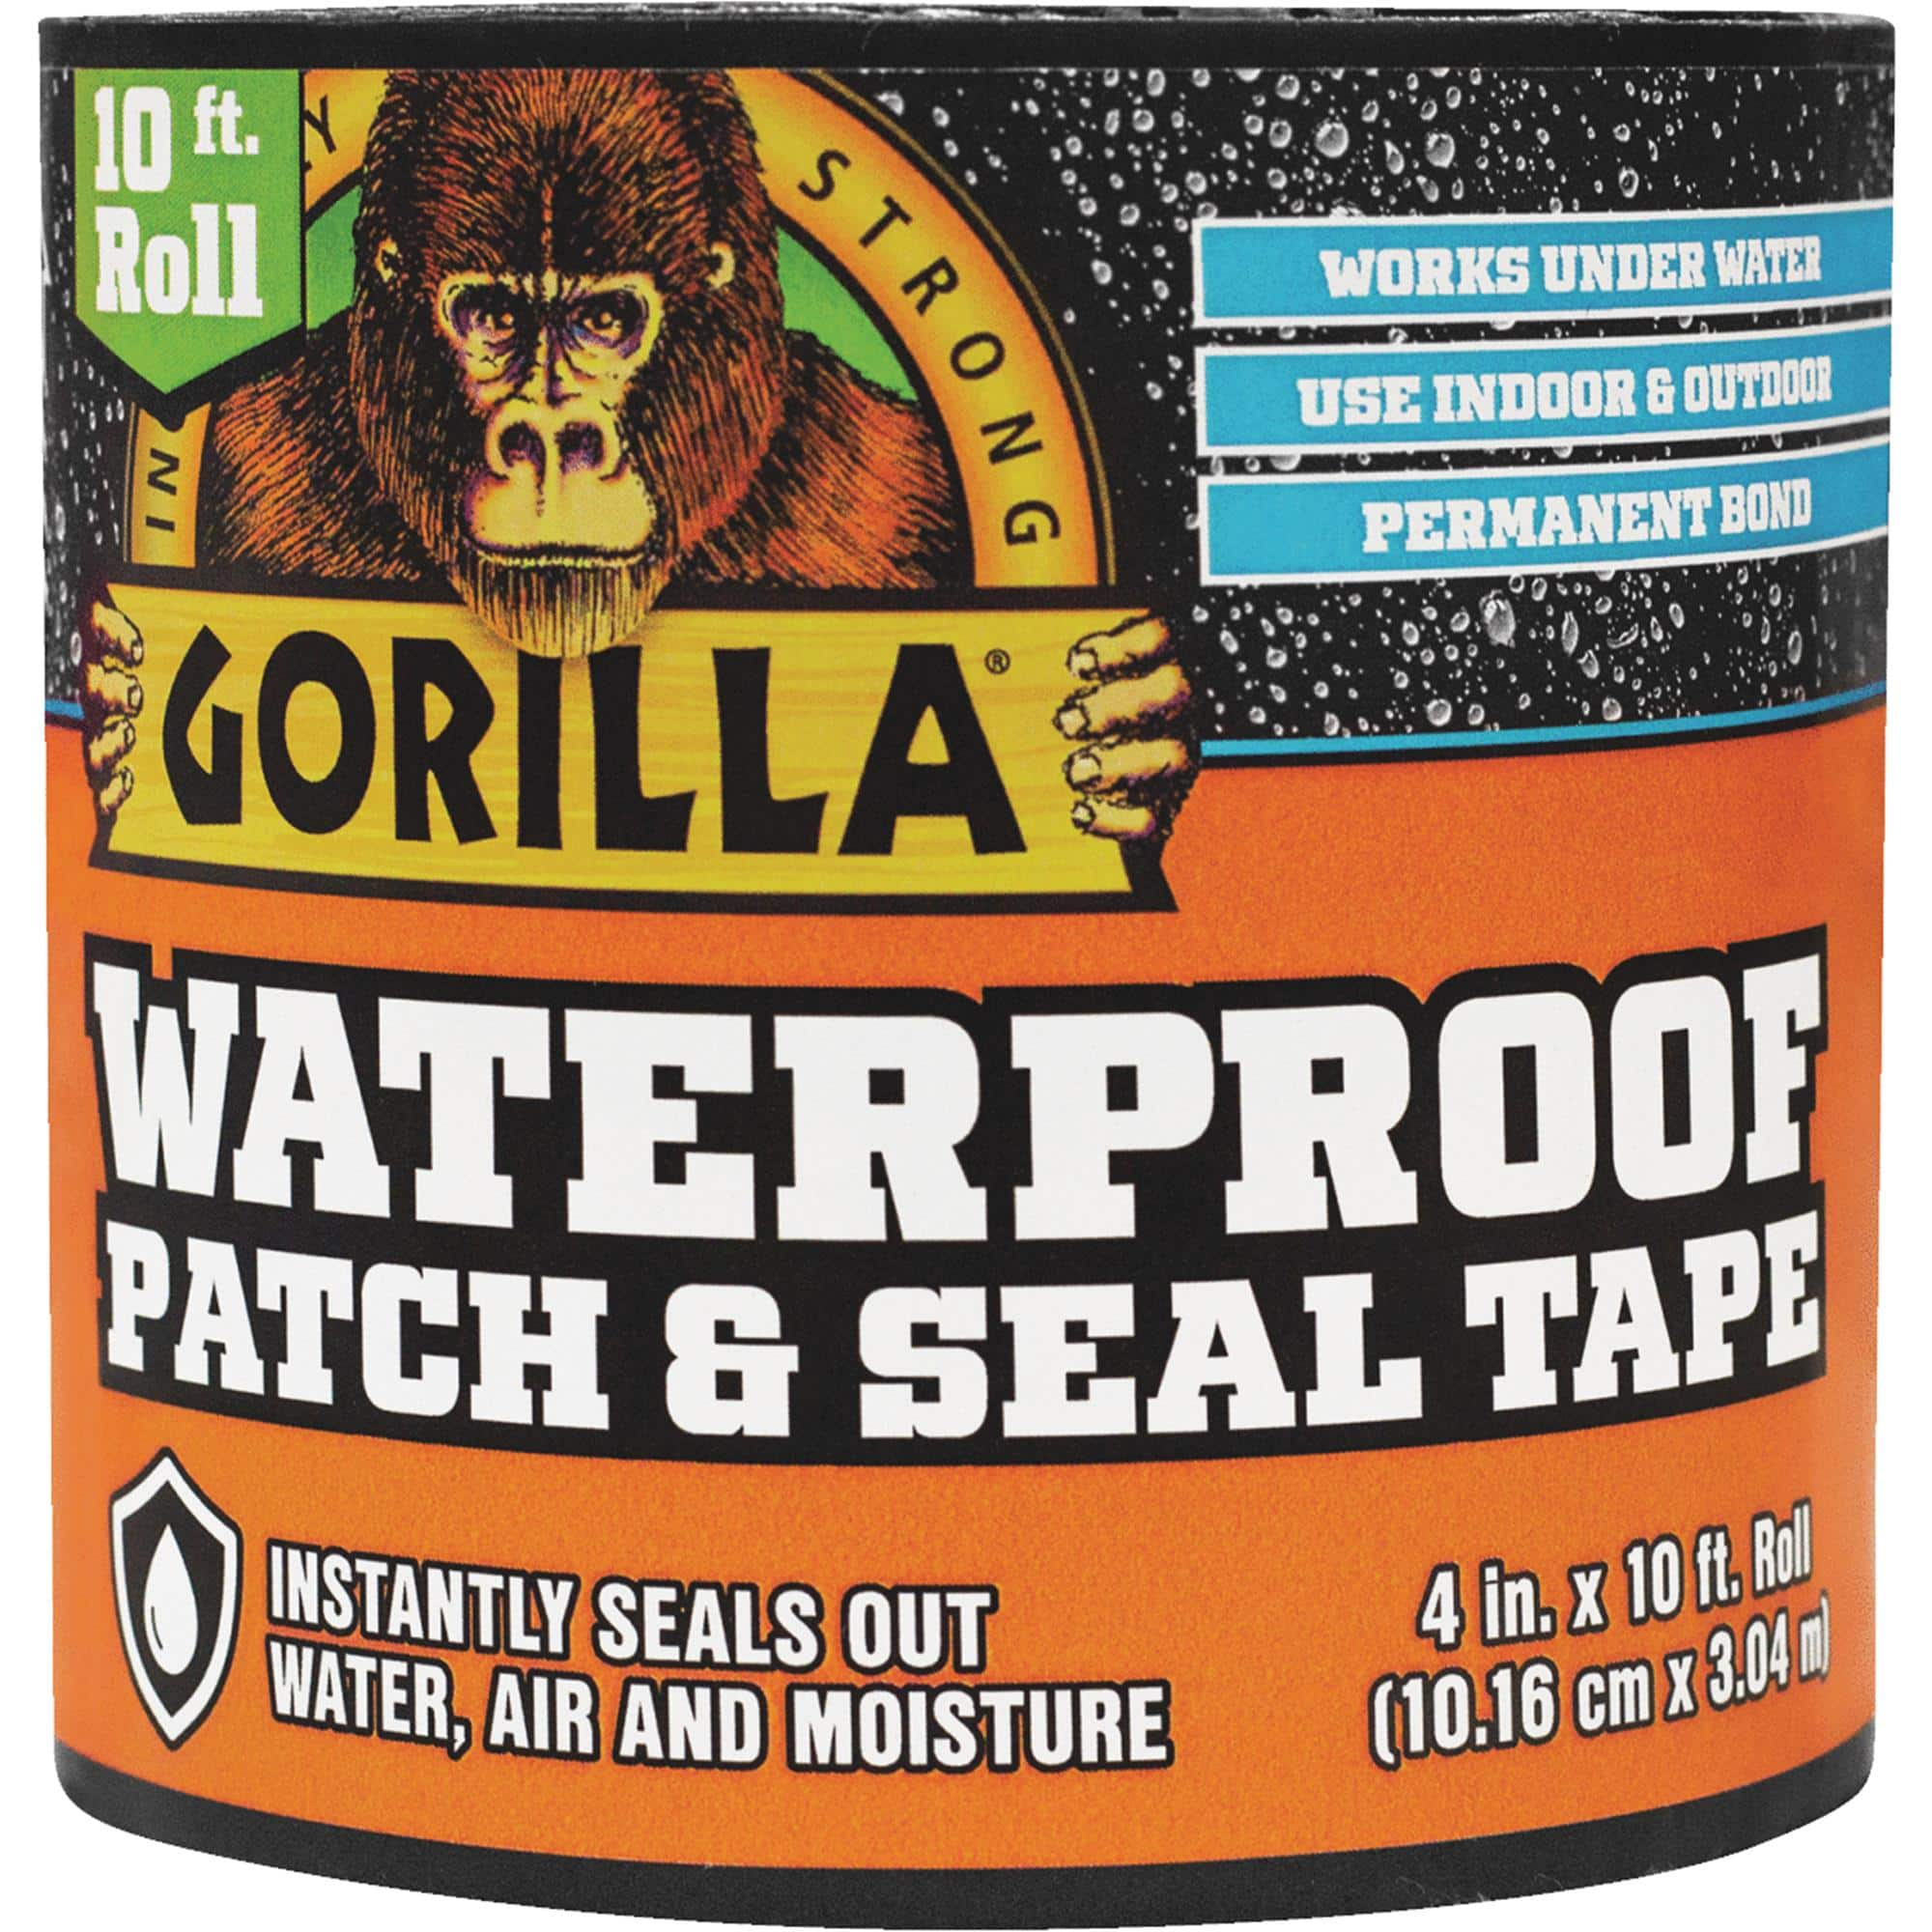 Gorilla waterproof patch and seal tape @ Walmart $6.47